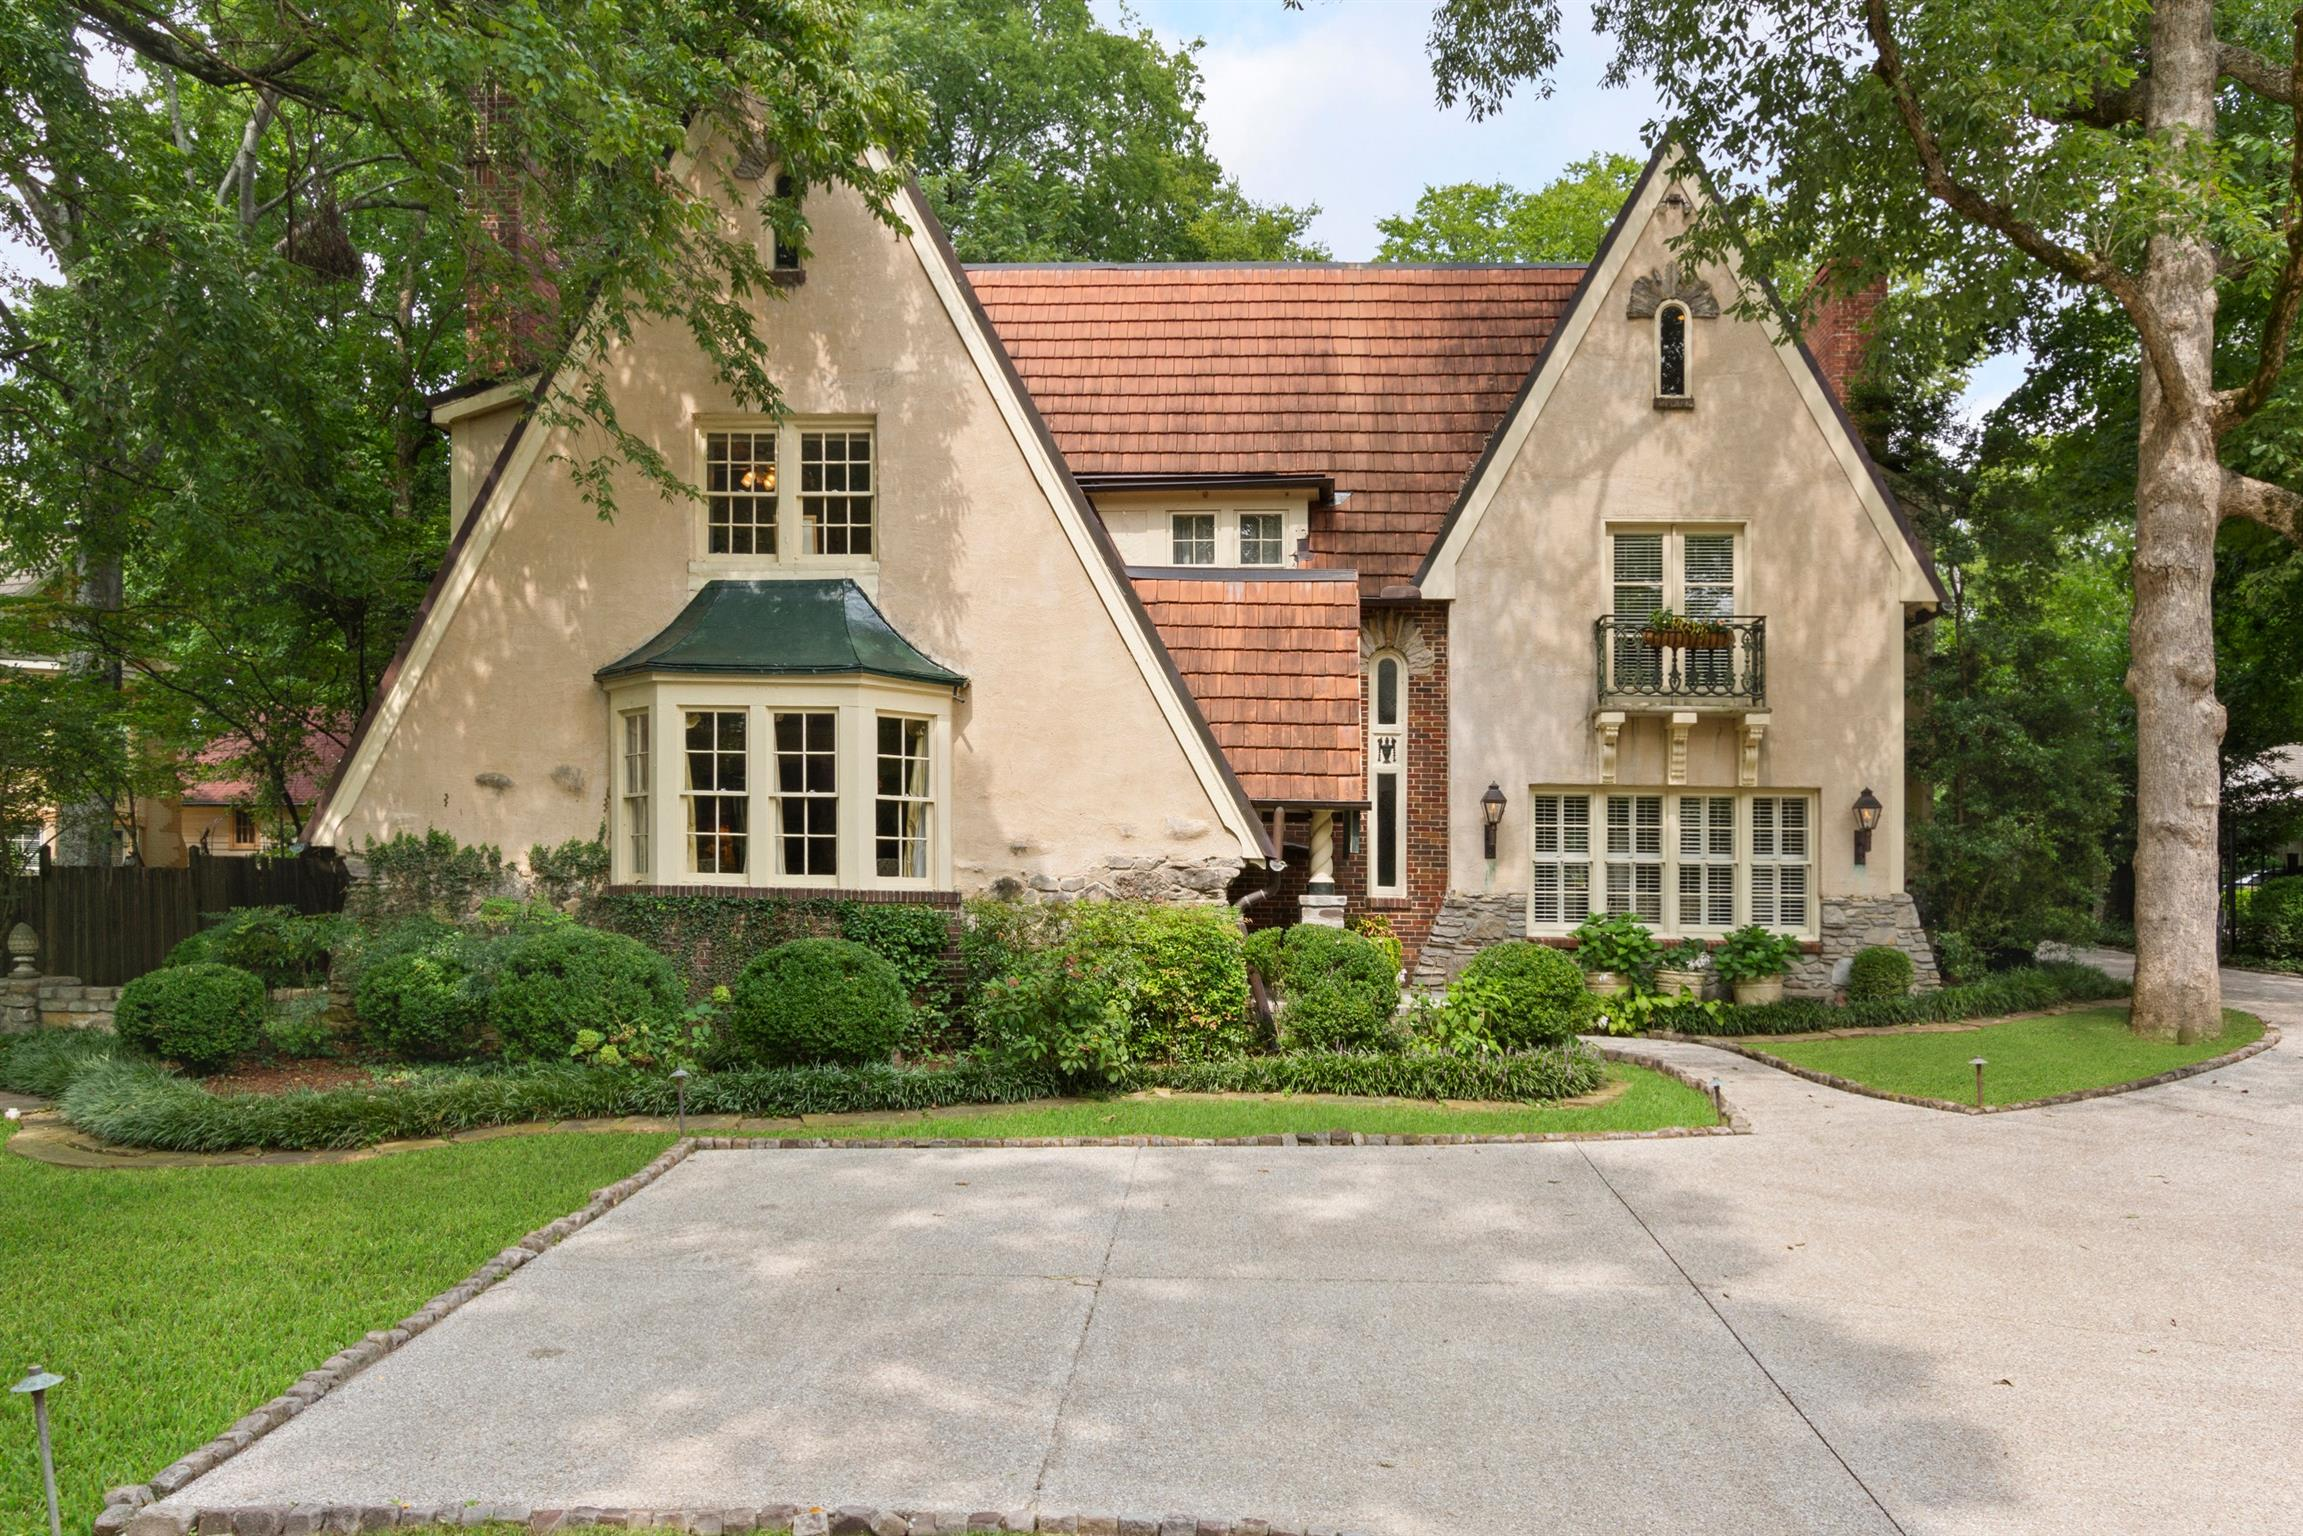 Storybook home in quiet corner of Belle Meade . This one has a stunning entrance that appears as if Snow White herself could walk out at any moment.